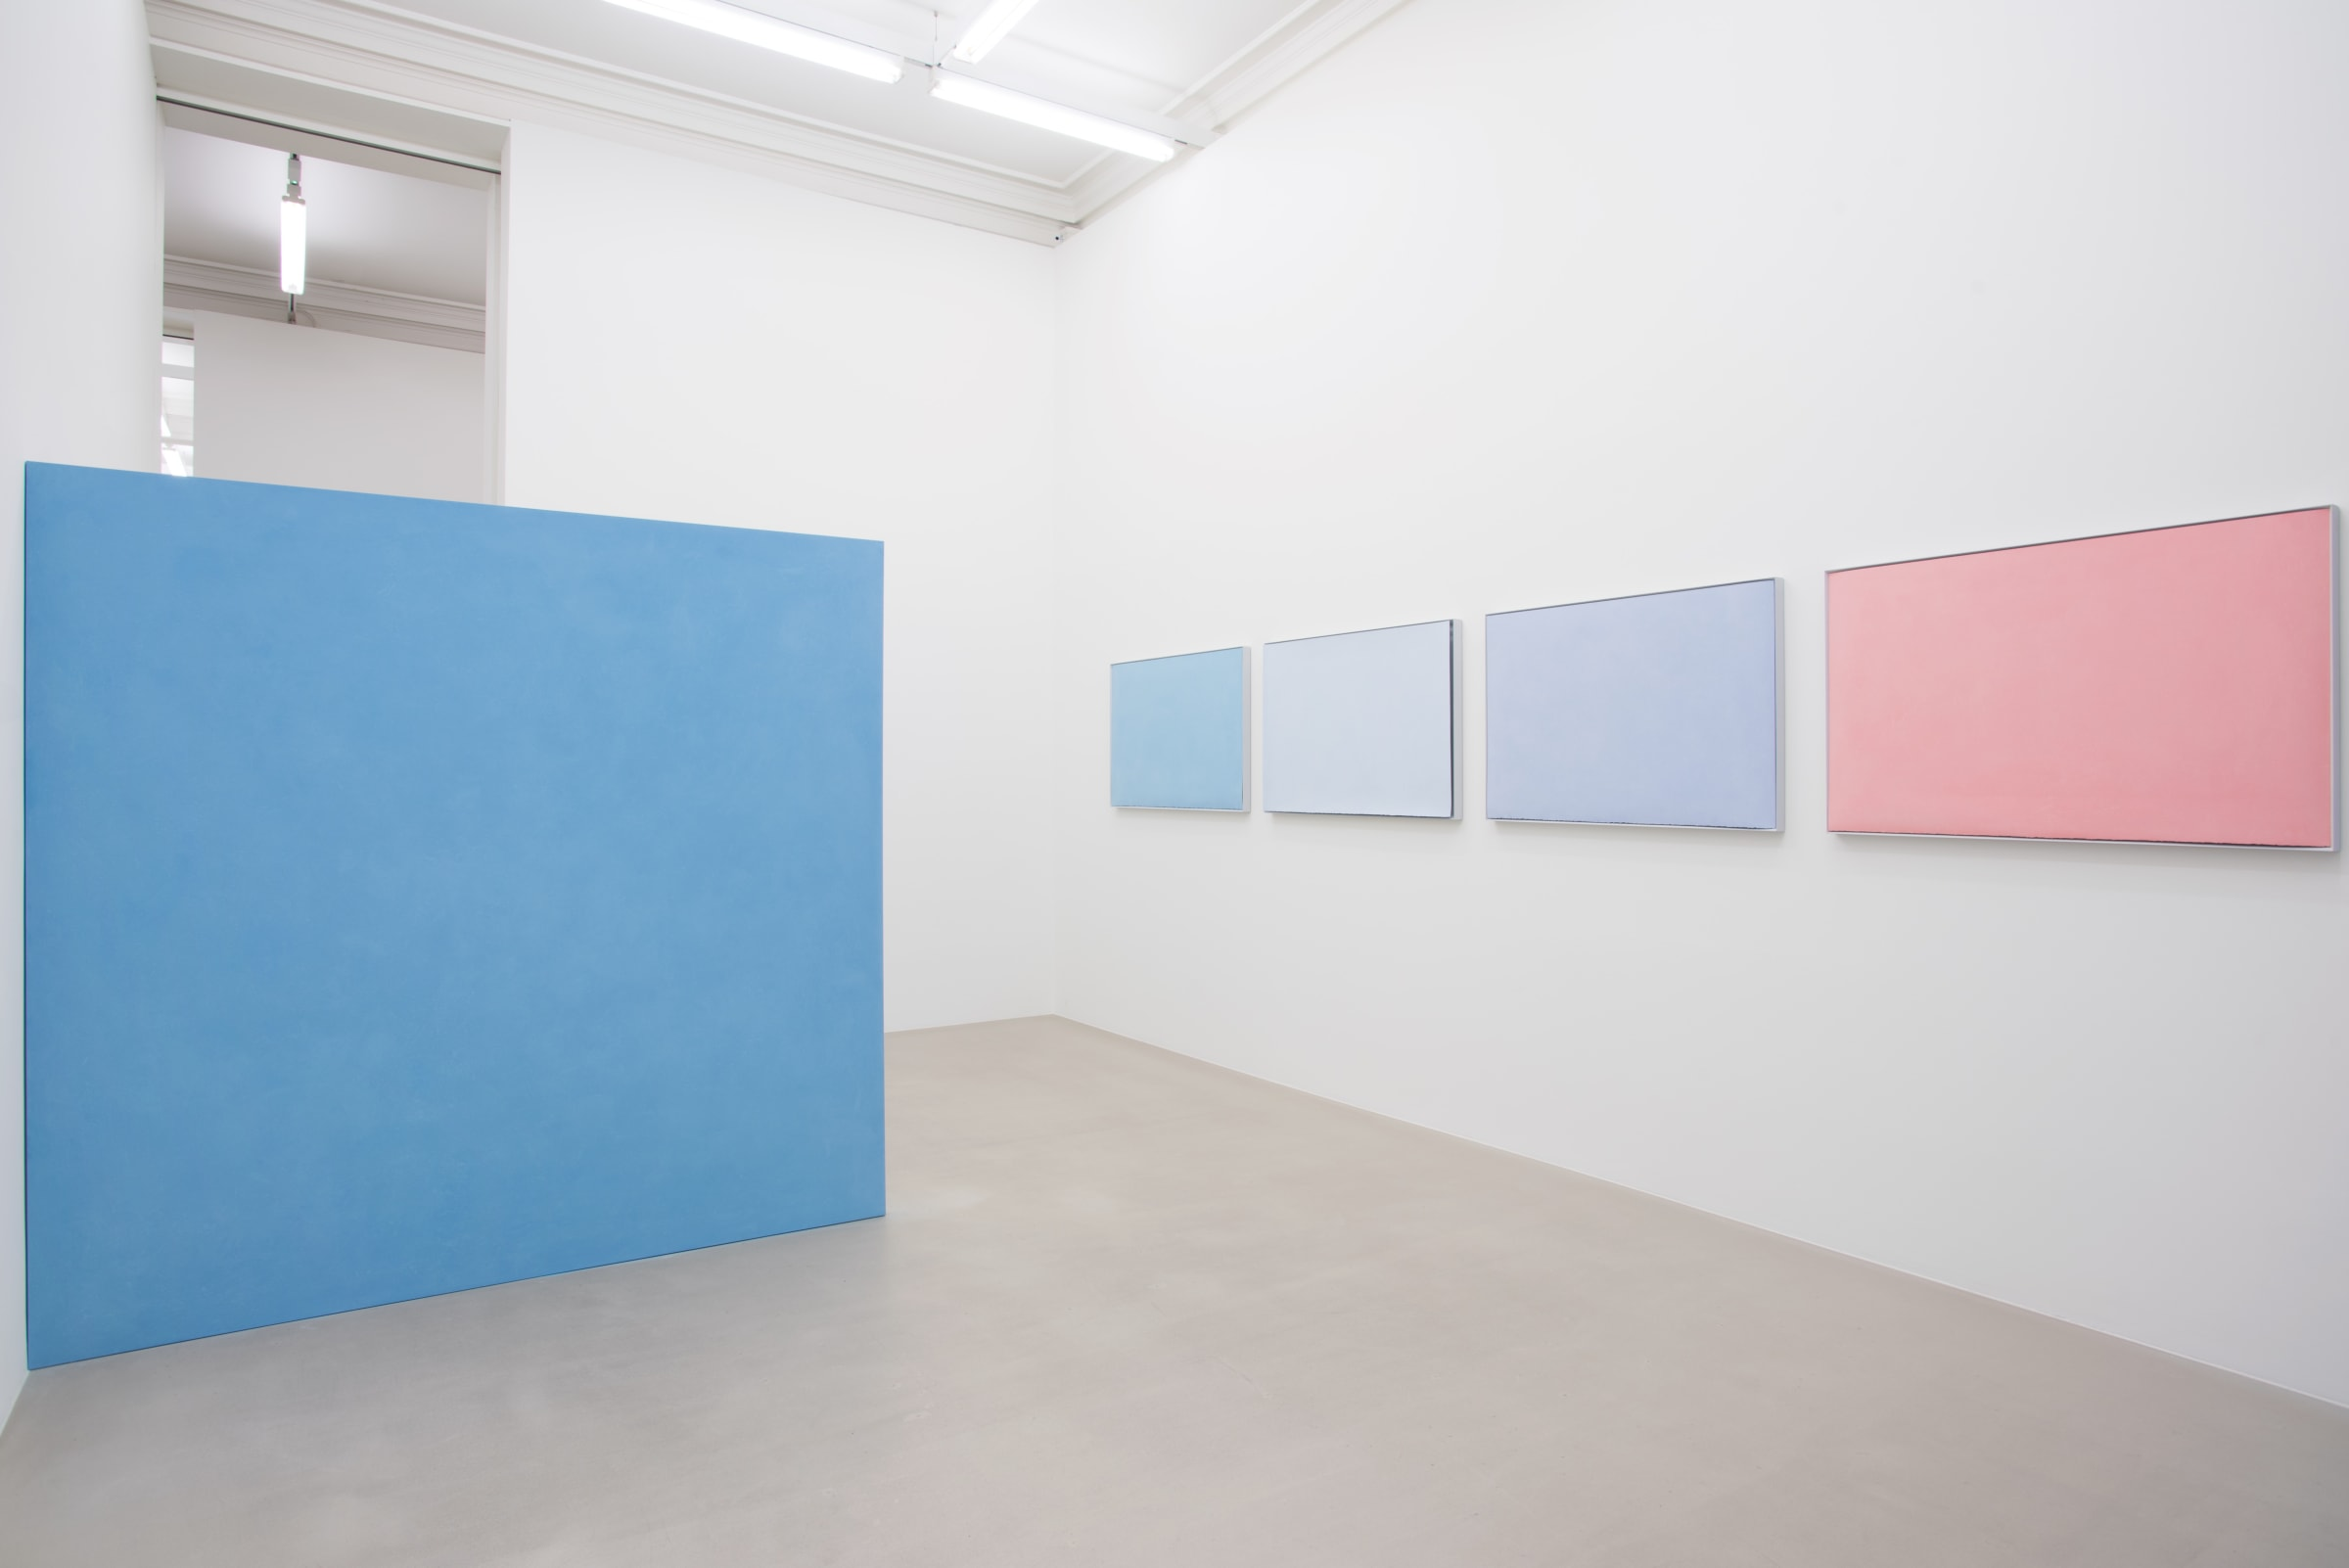 4 pastel colored paintings hang horizontally on the wall on the right. A large, light blue floating wall comes out perpendicularly from the wall on the left.